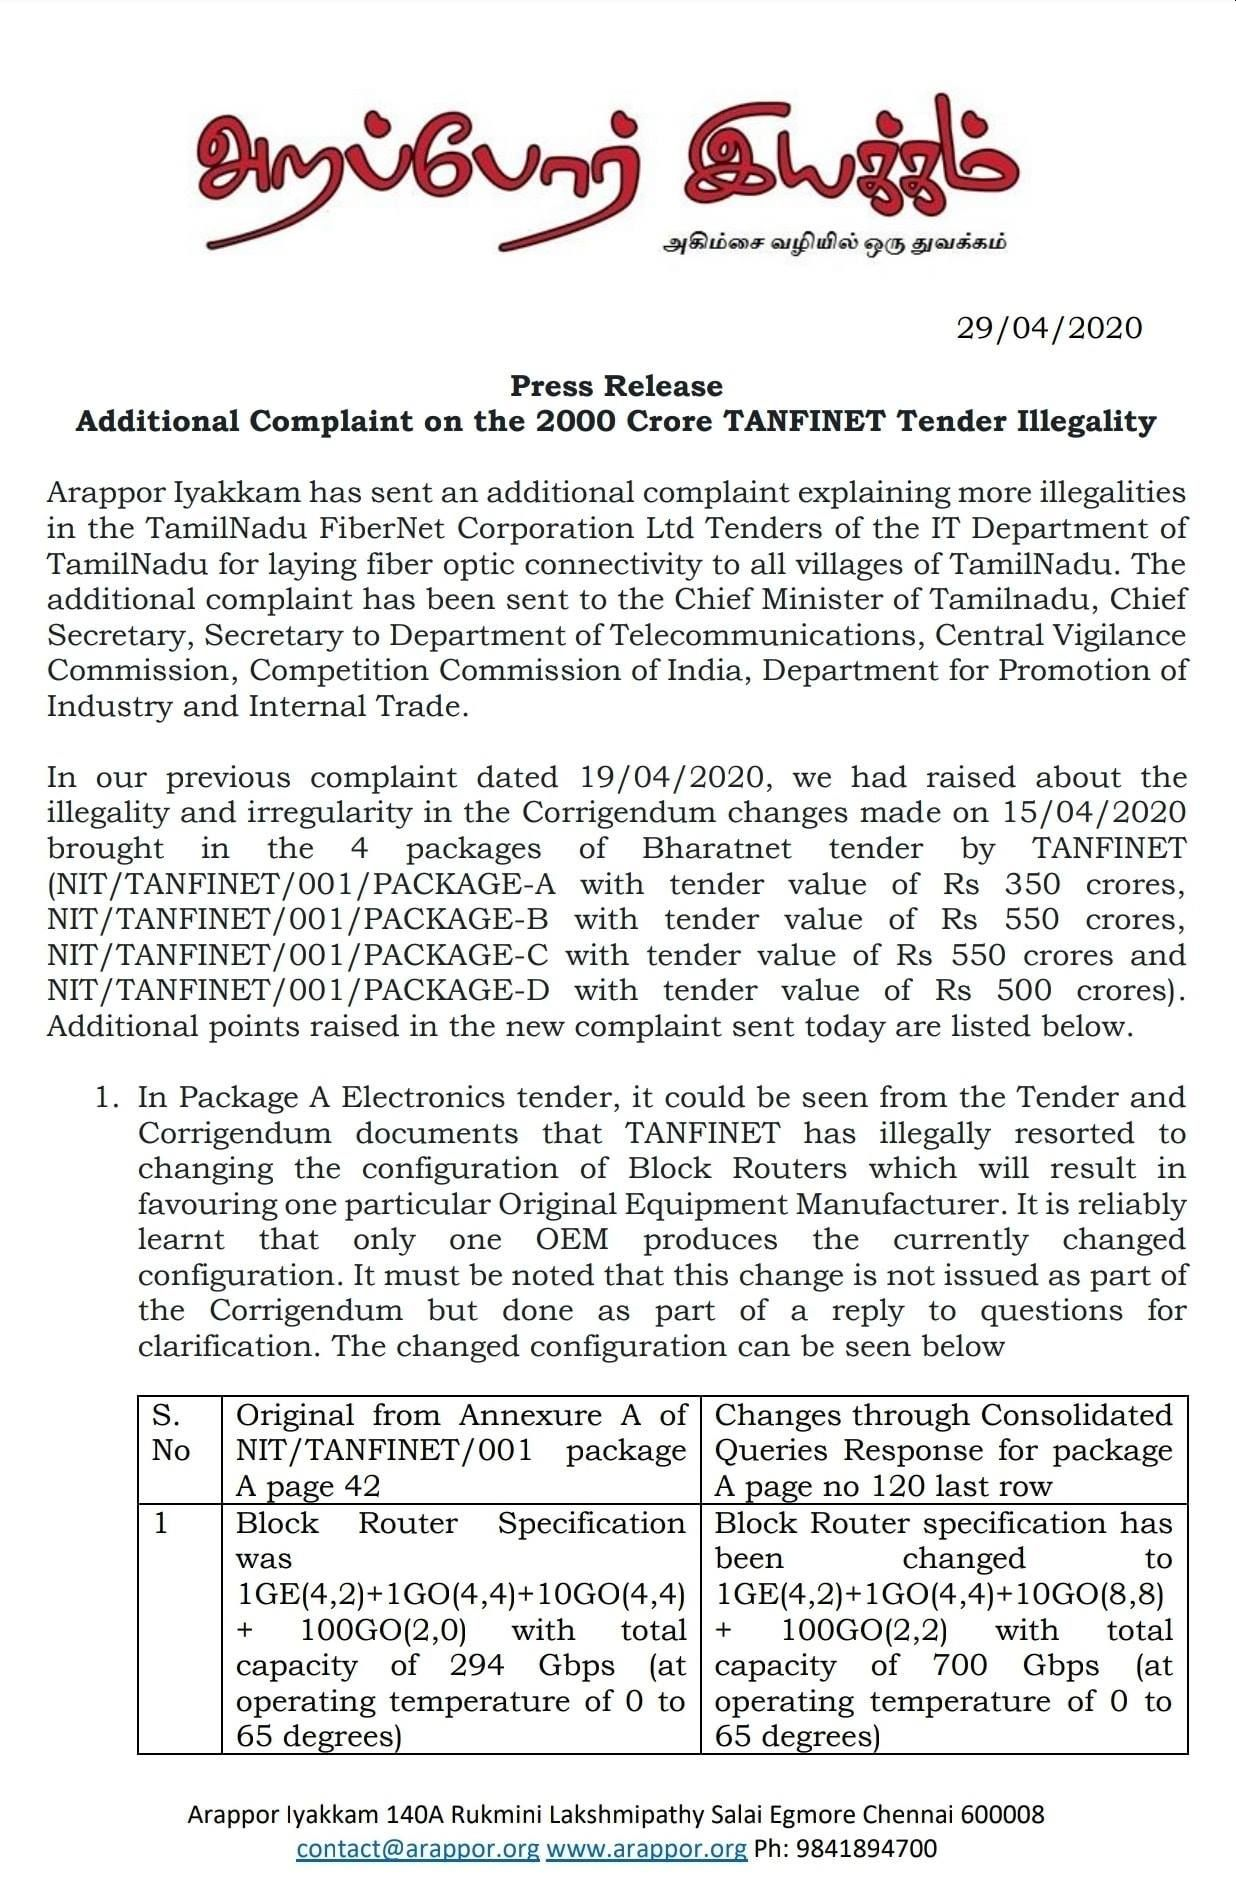 A few more evidences produced by Arappor in the 2000Cr Tanfinet Tender